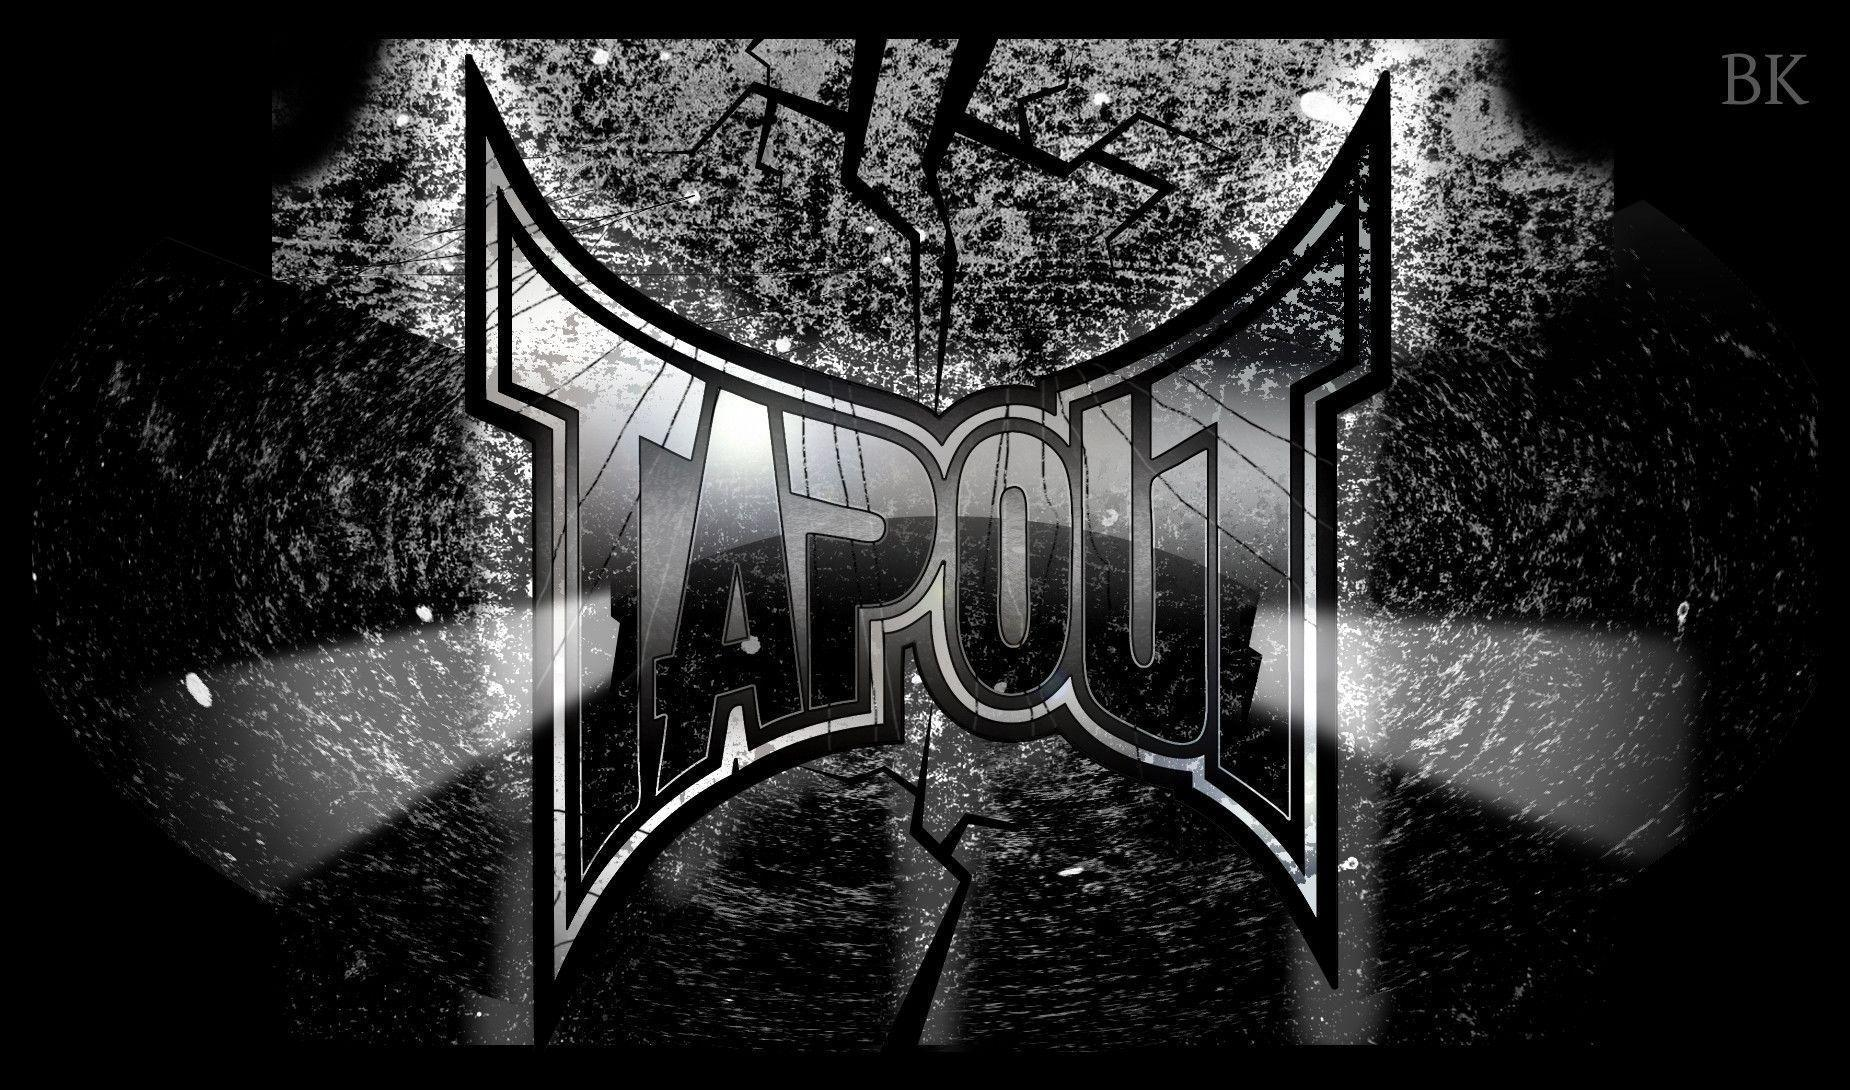 tapout wallpaper for facebook - photo #29